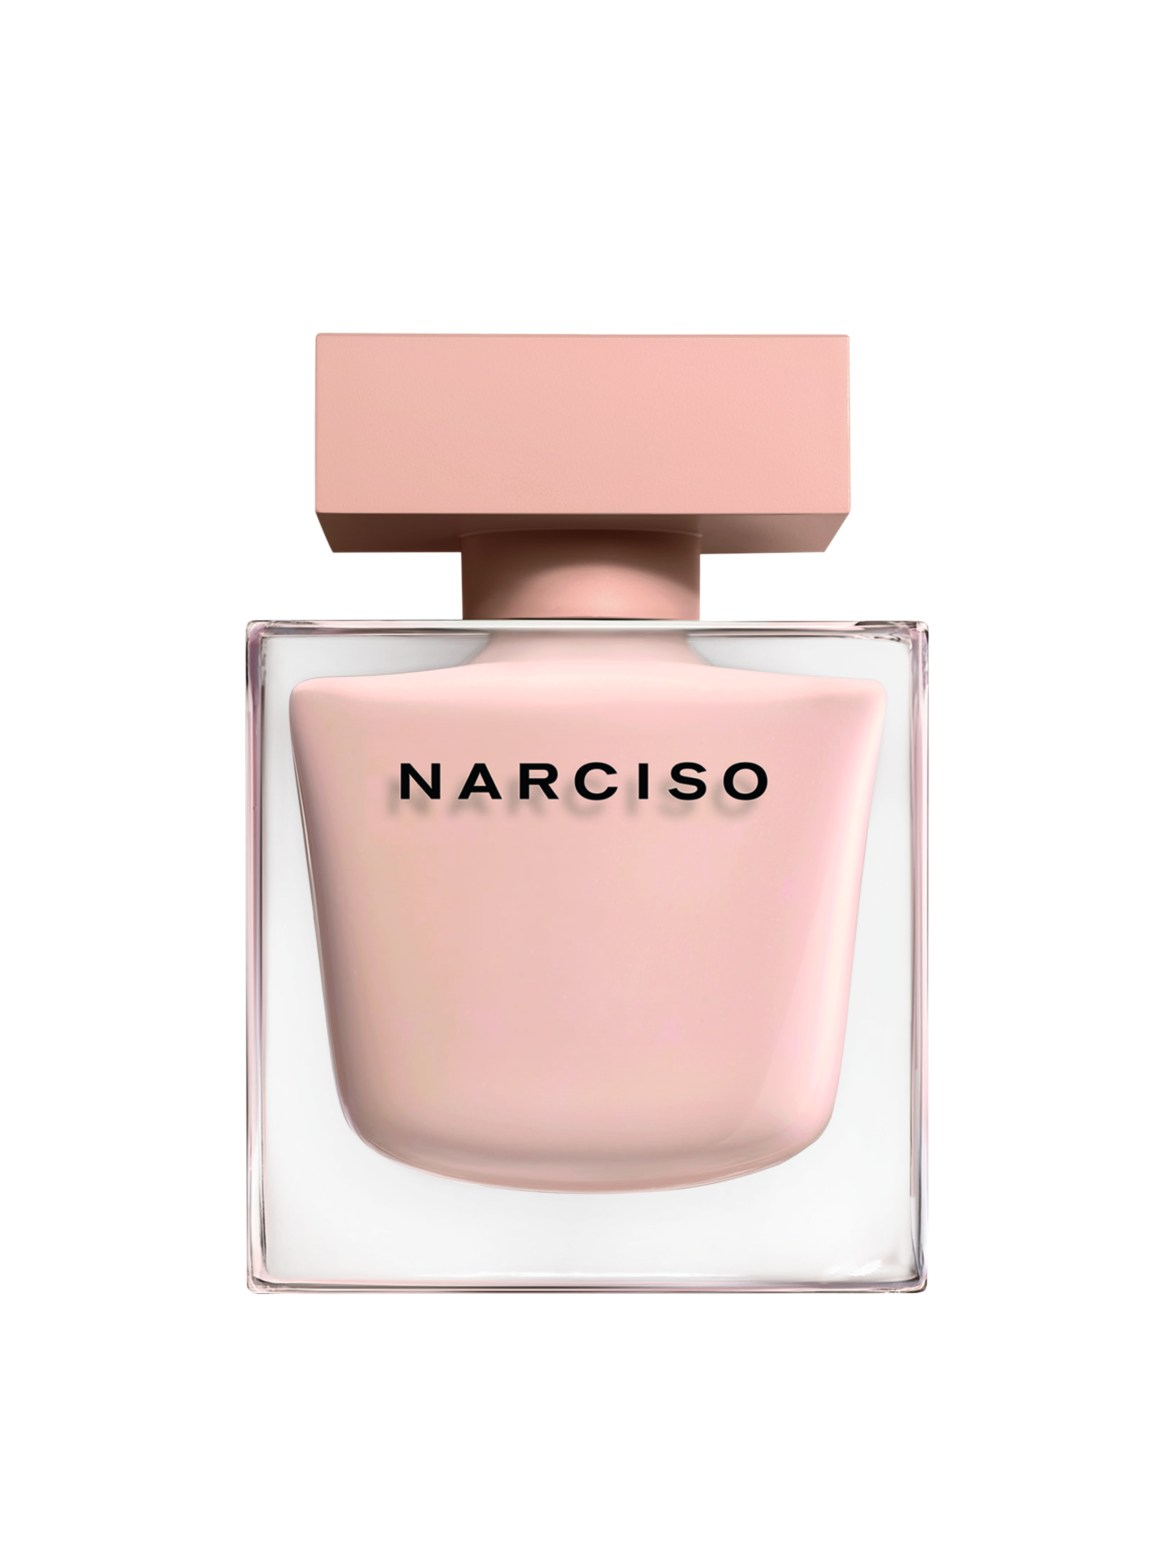 NARCISO Packshot with background.indd